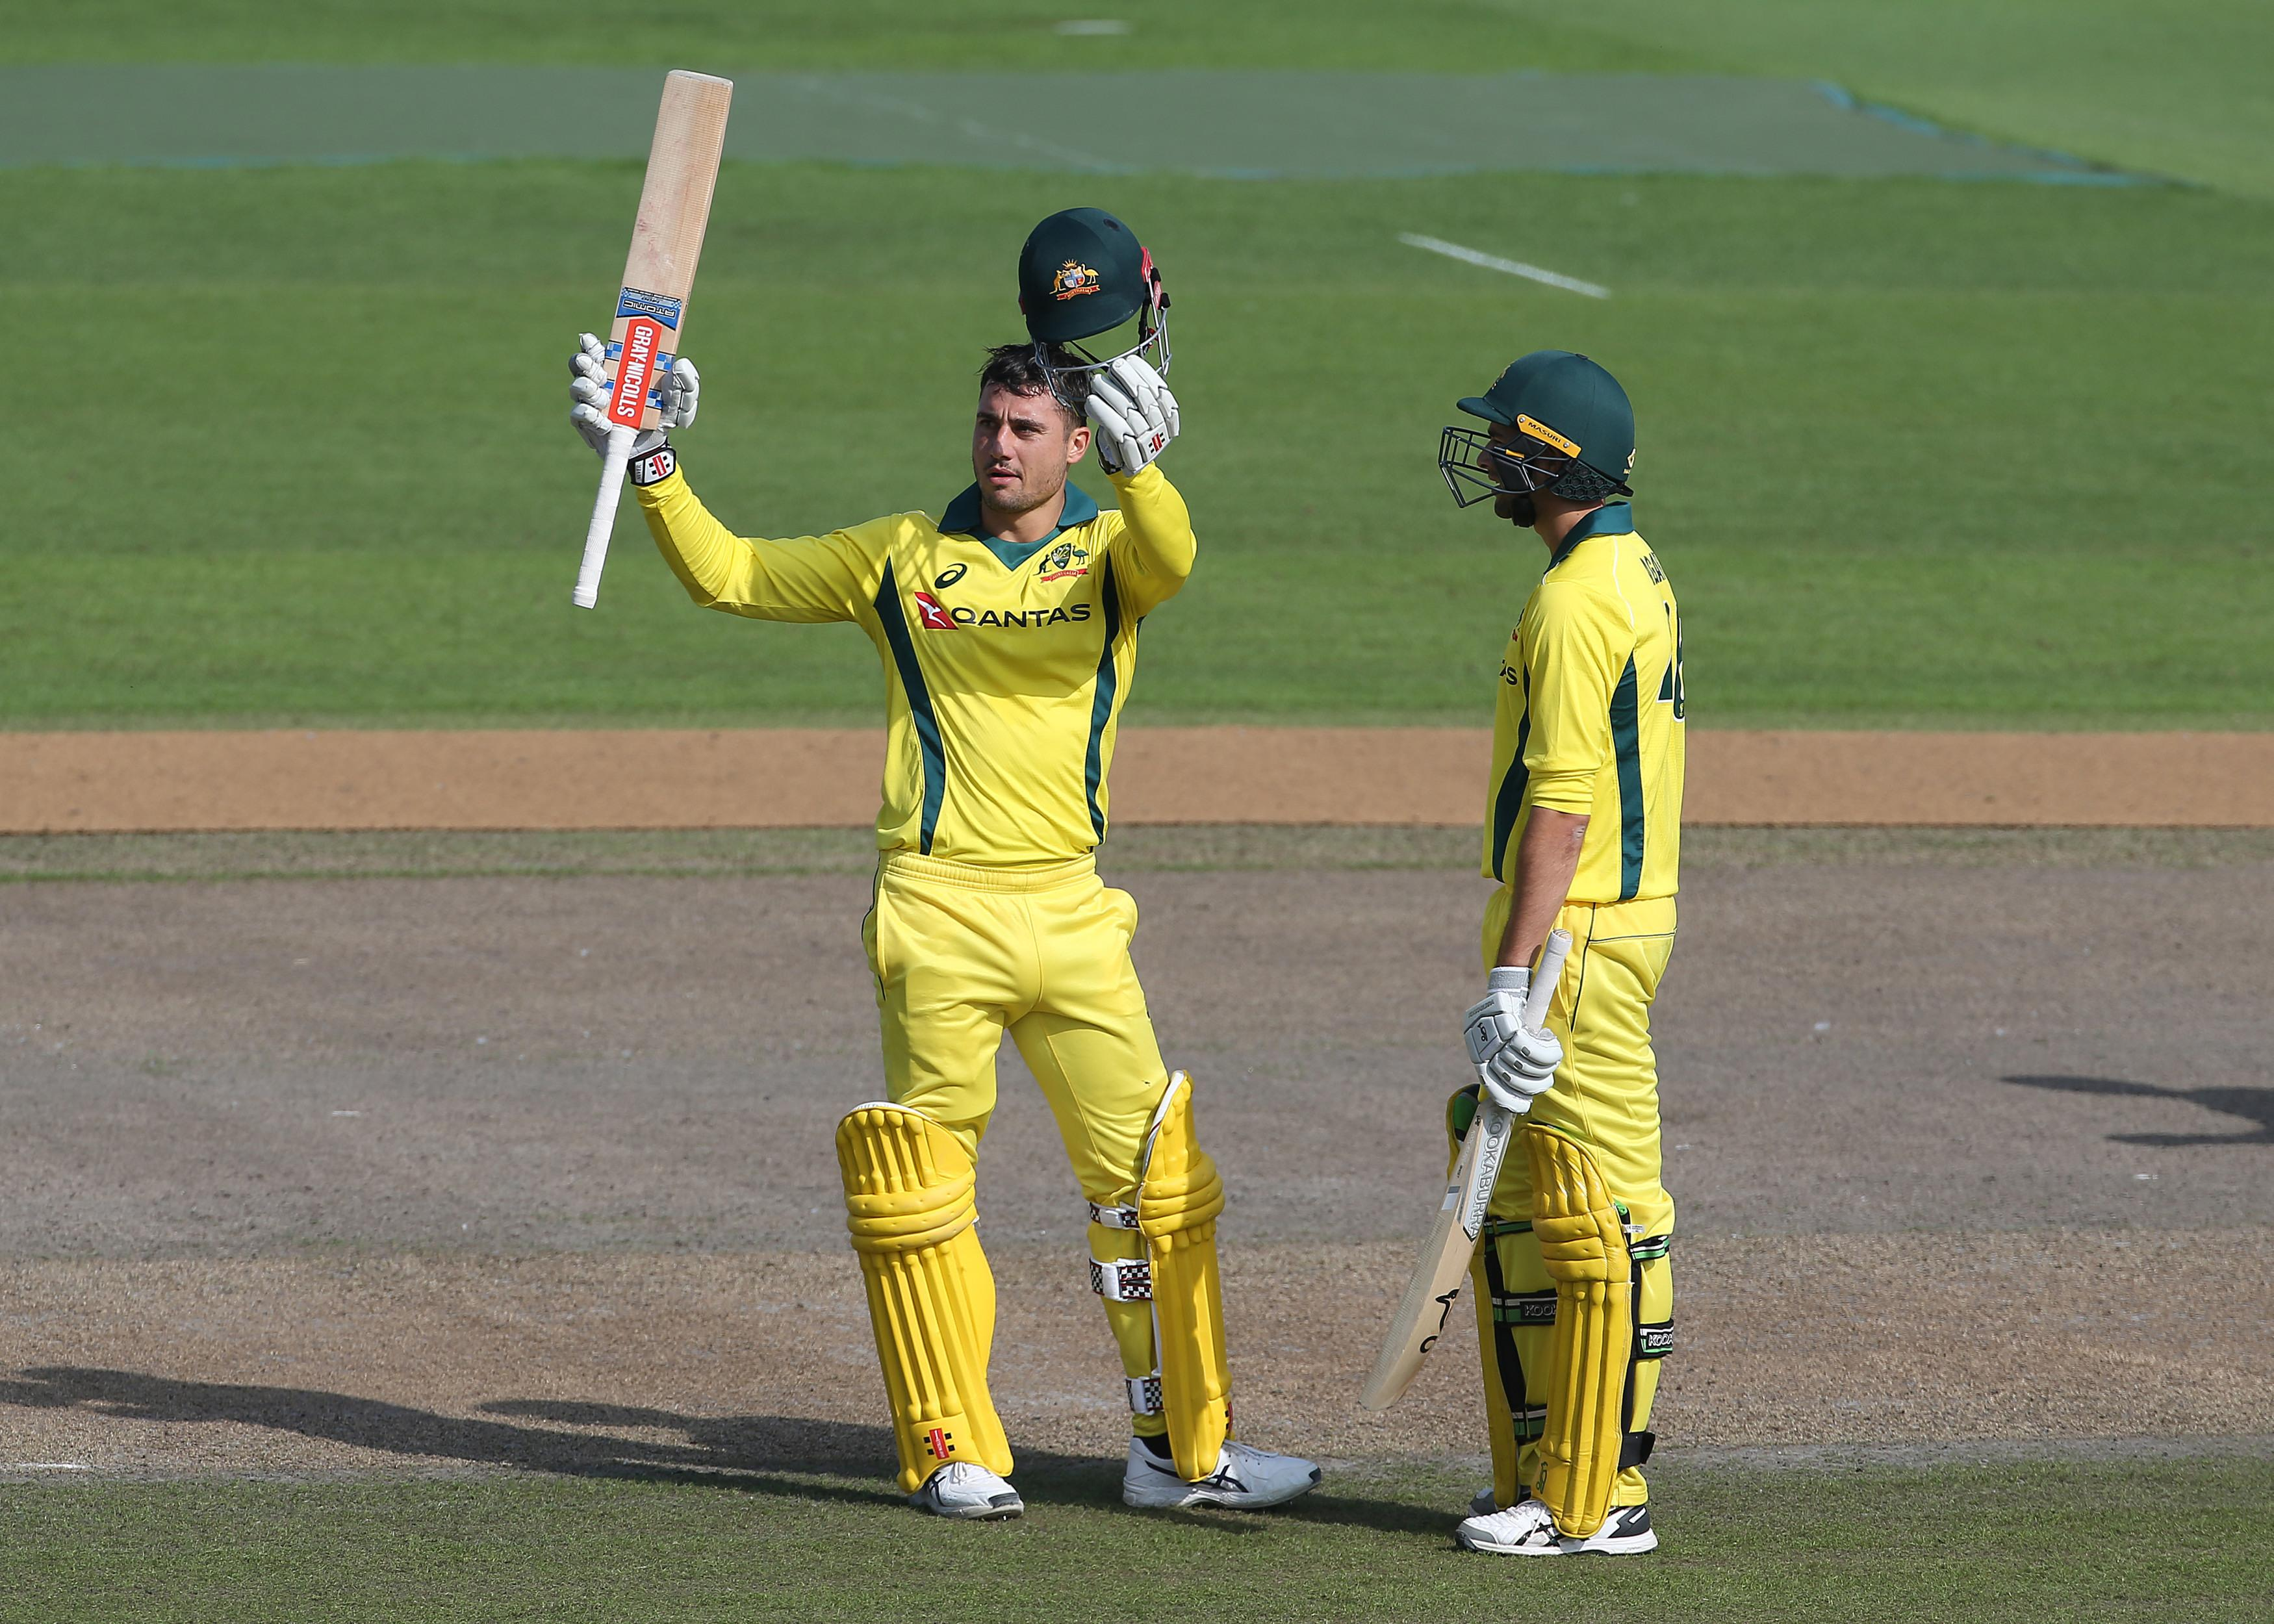 Marcus Stoinis scored a brilliant century as Australia won their first match since the sandpaper scandal